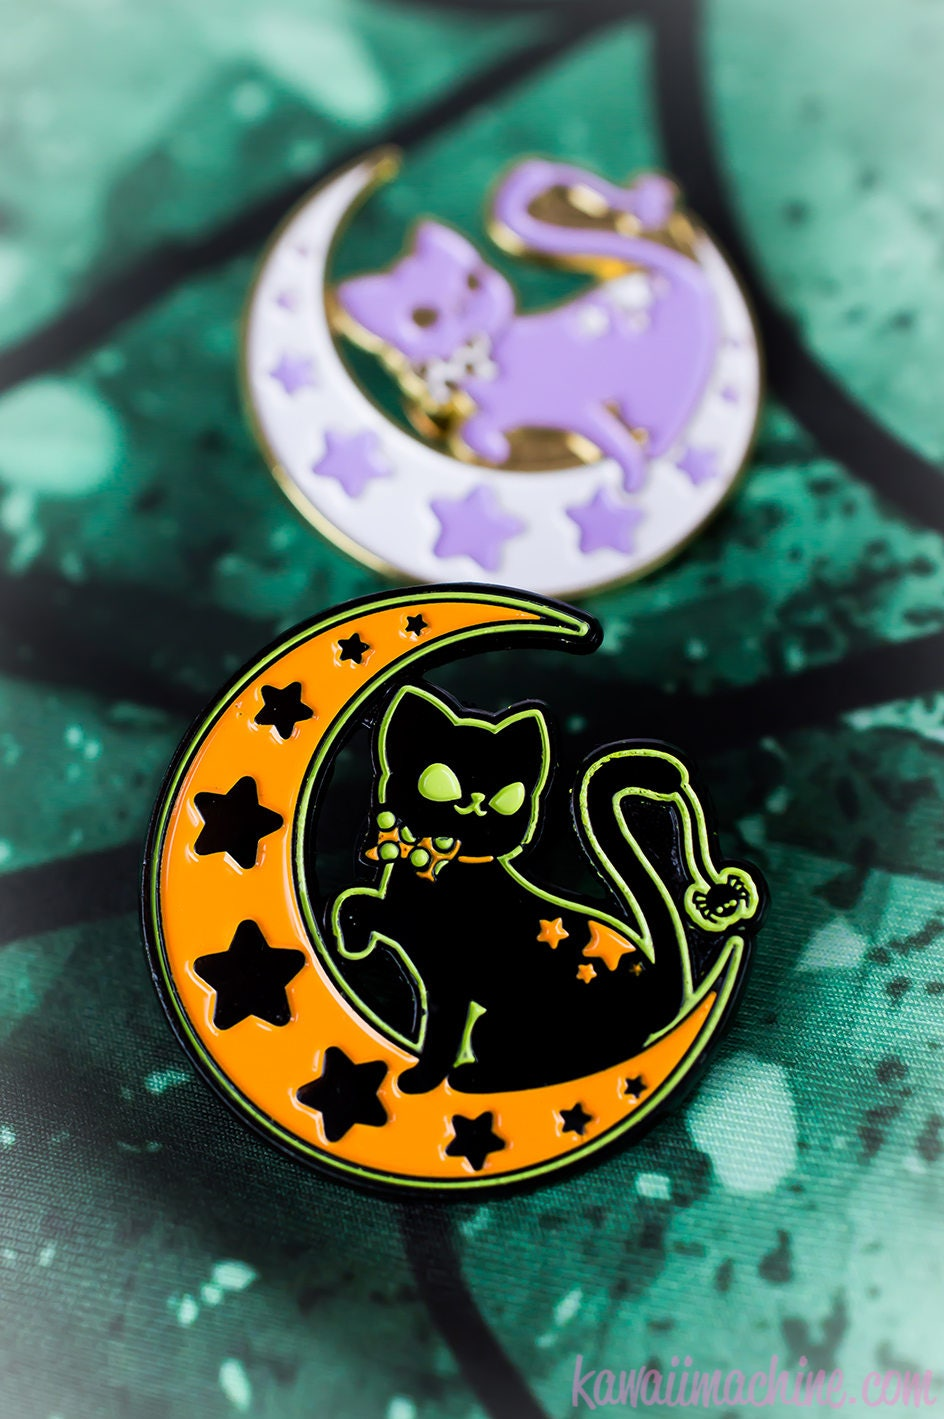 Pin By Casey Speights On Nails: Moonlight Kitty Cute Enamel Pin Soft Enamel Cat Lapel Pin